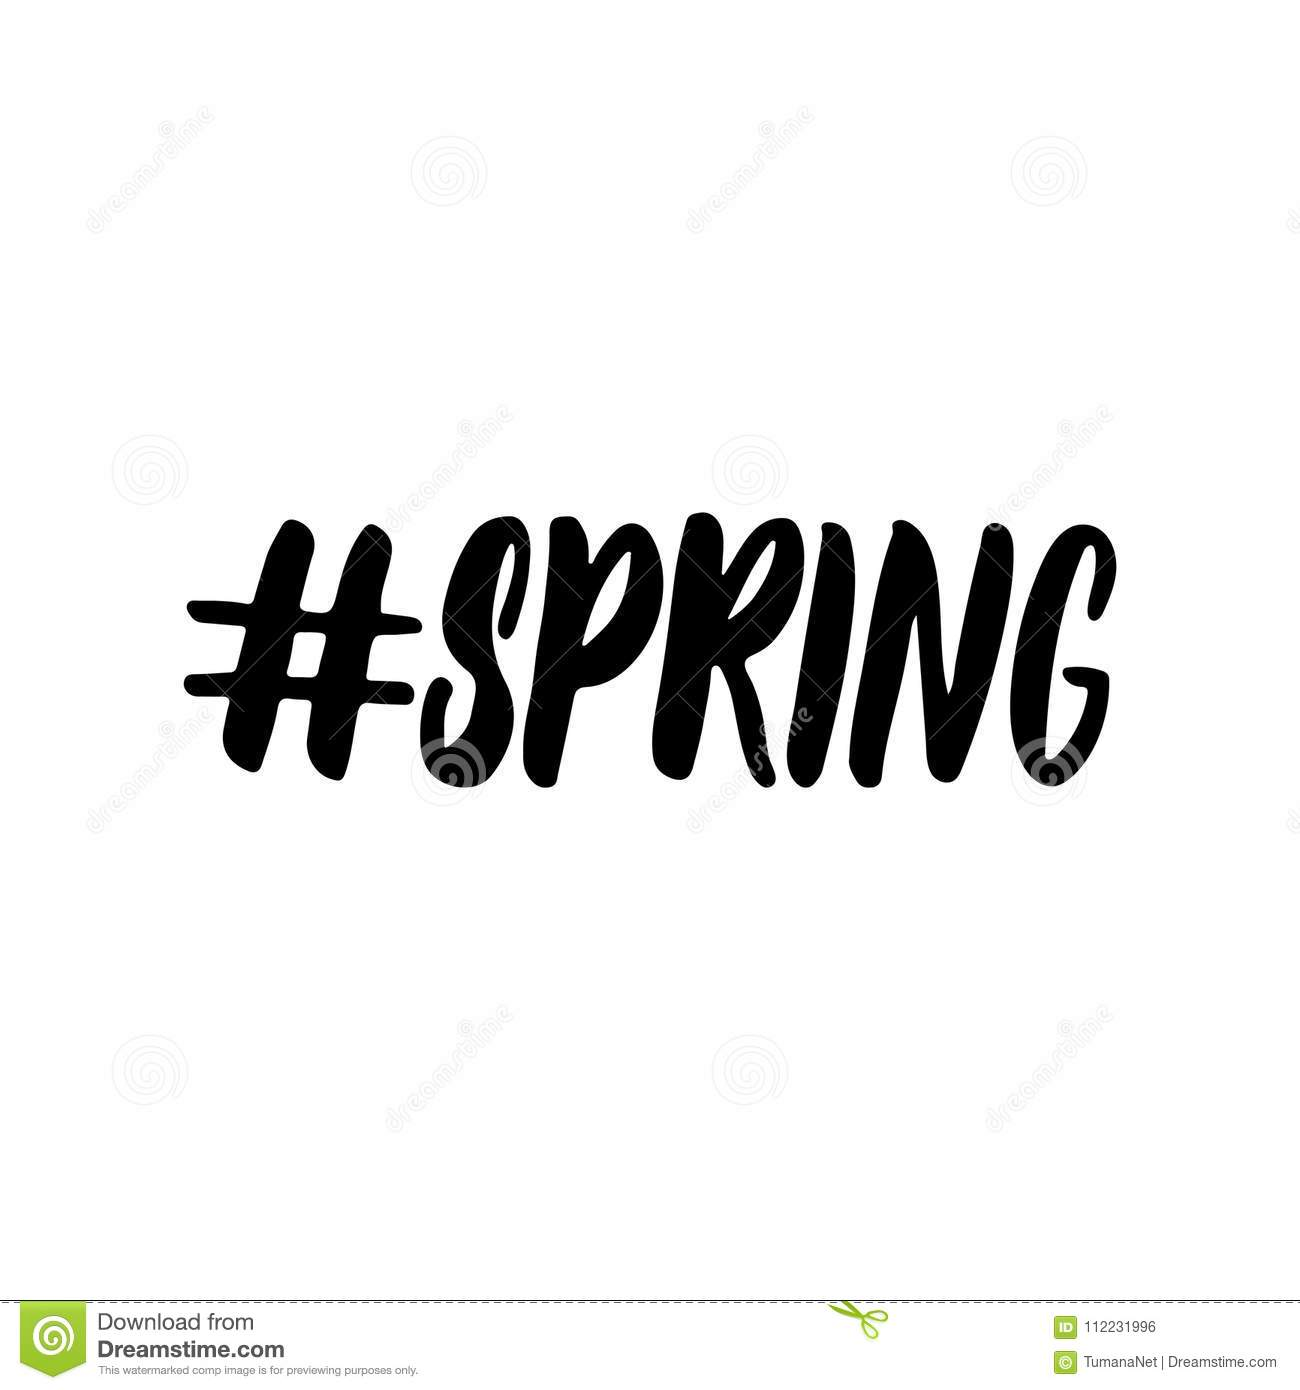 Hashtag spring hand drawn lettering calligraphy phrase isolated on the white background fun brush